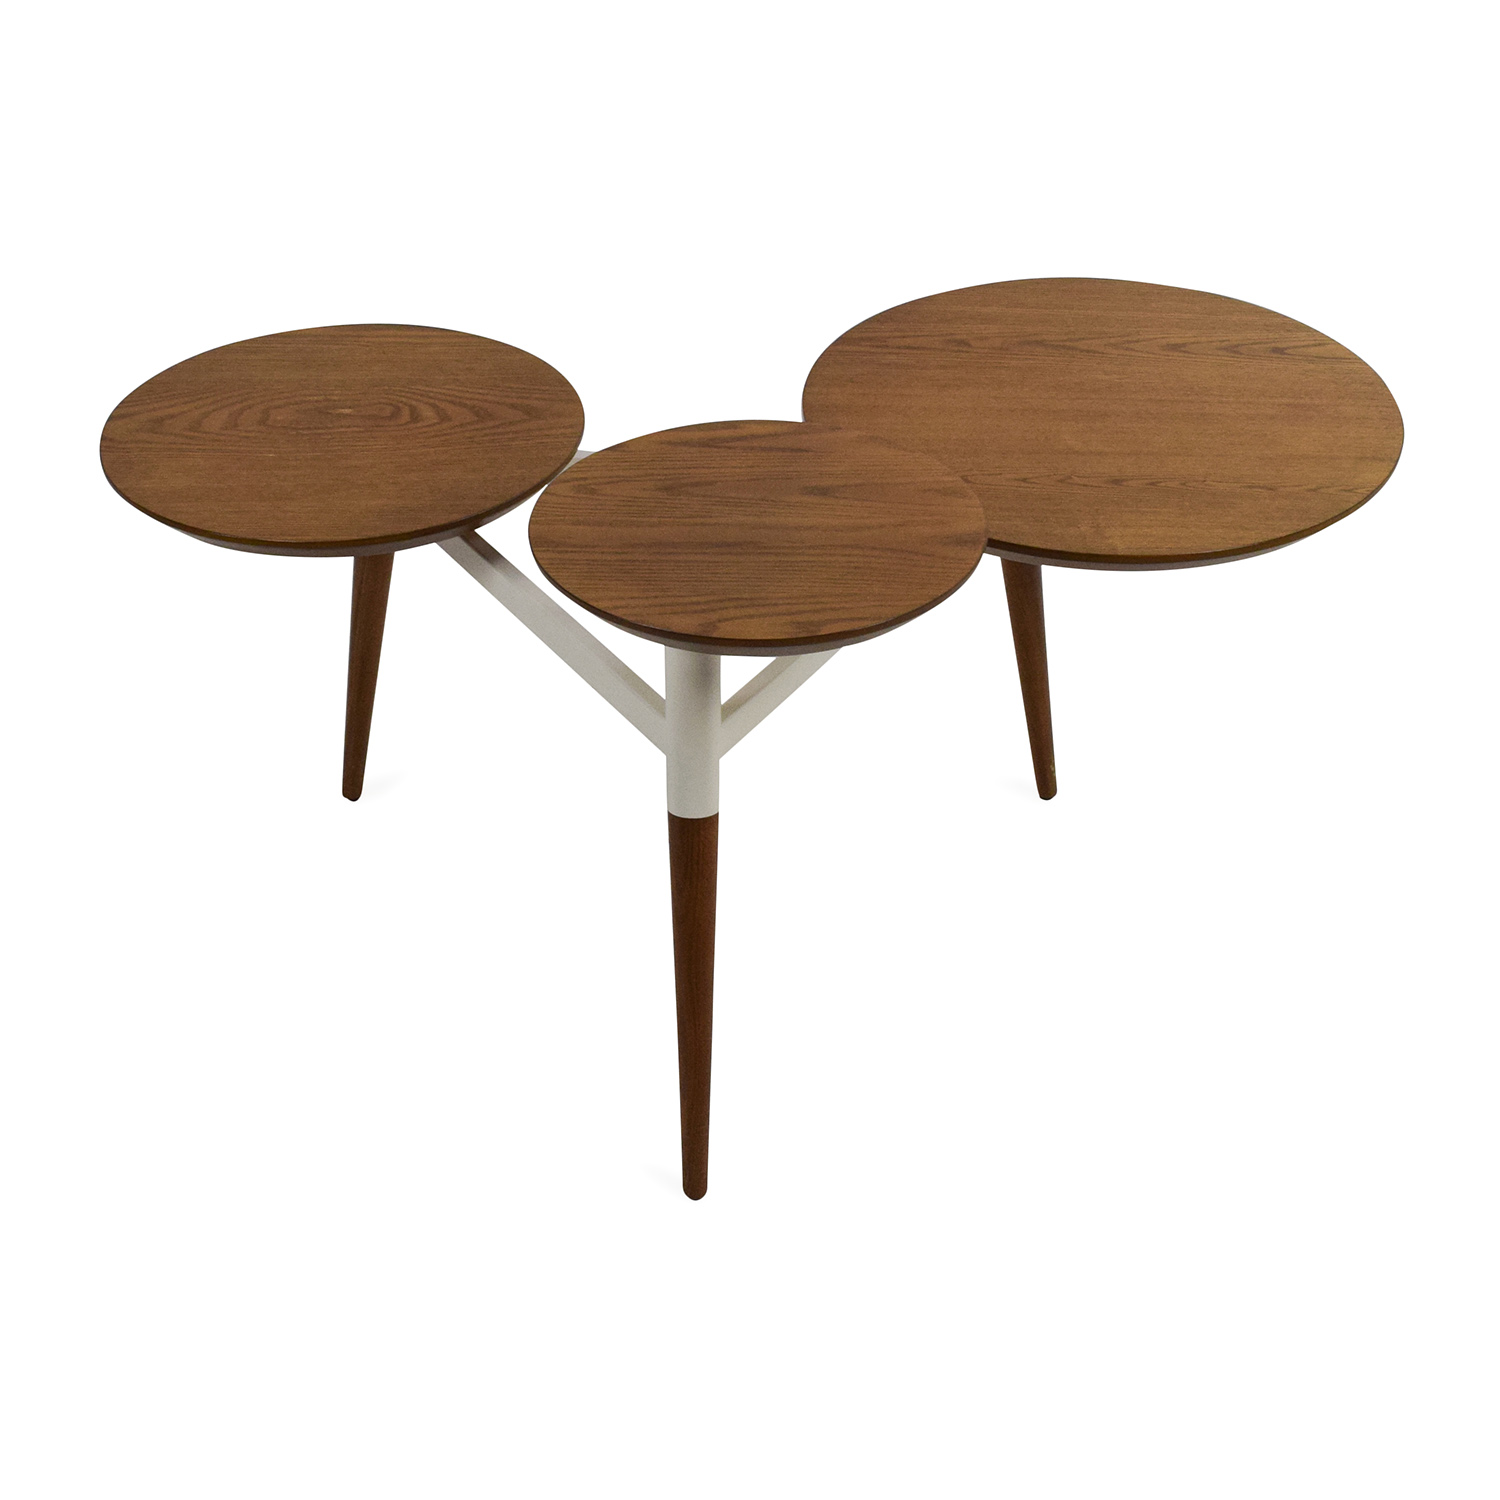 West Elm West Elm Clover Coffee Table Used